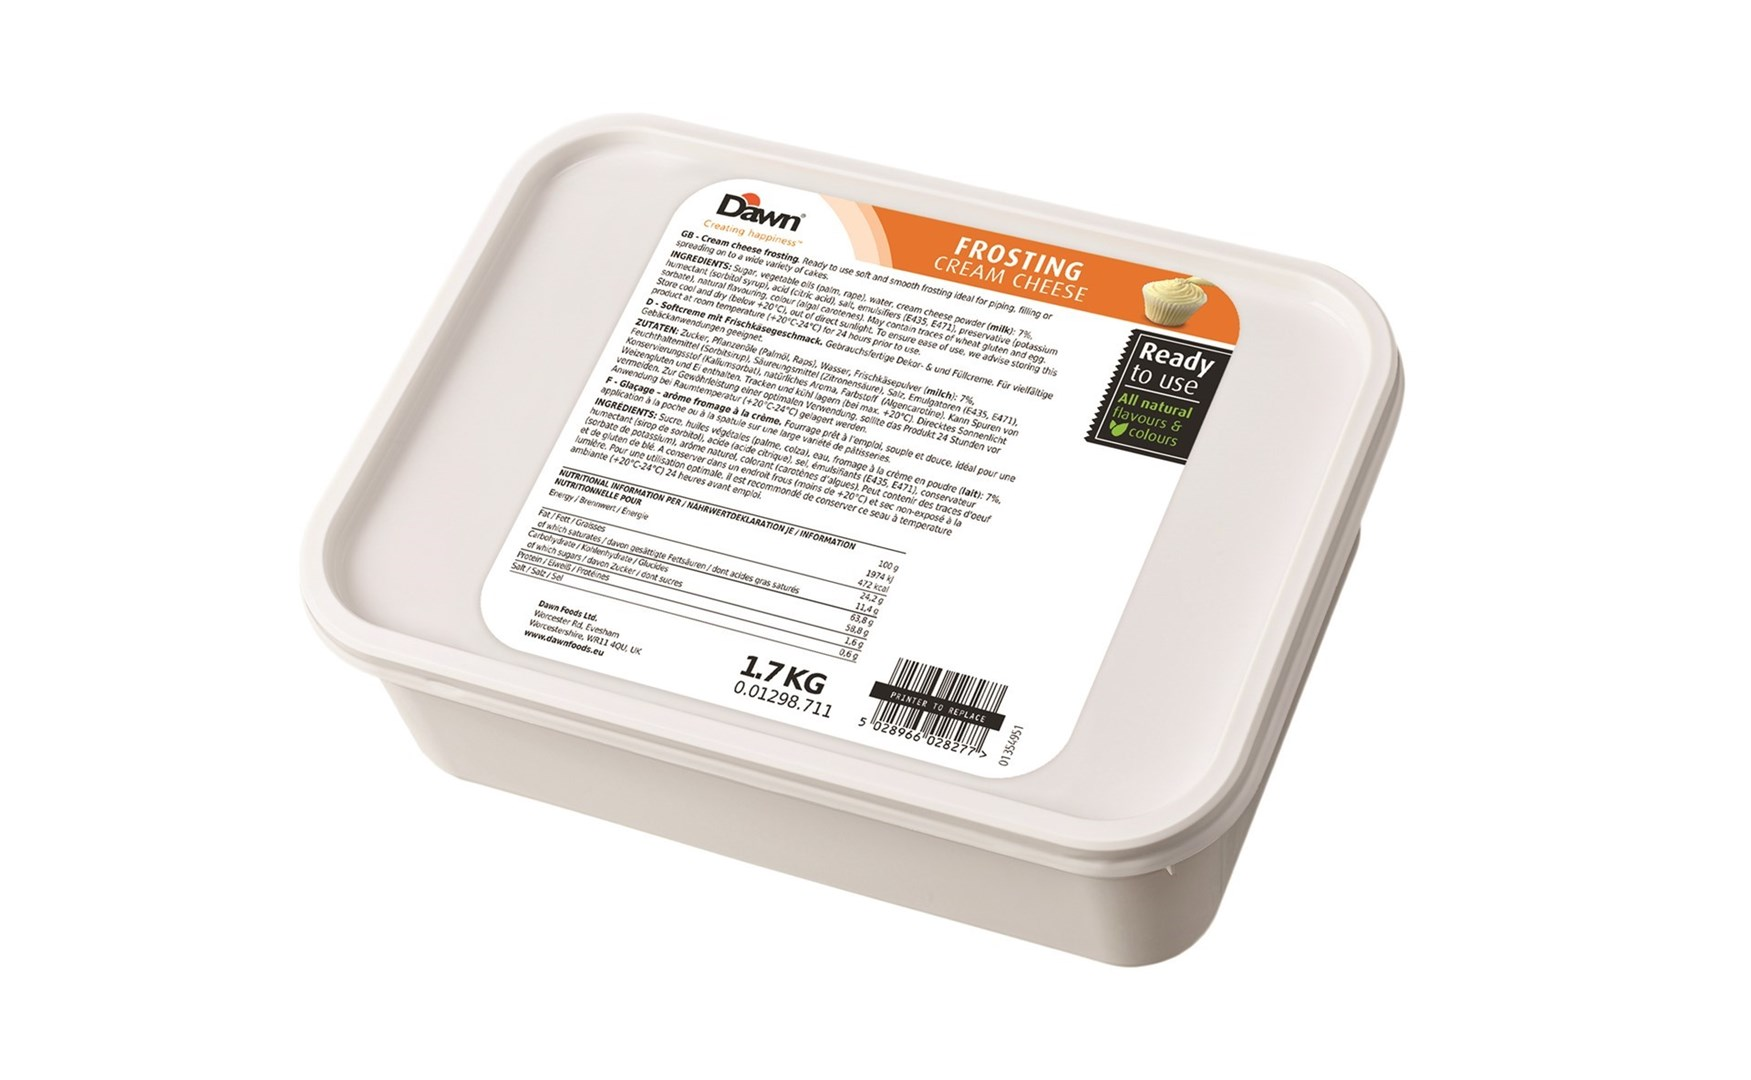 Productafbeelding Dawn Frosating Cream Cheese 1,7 KG emmer